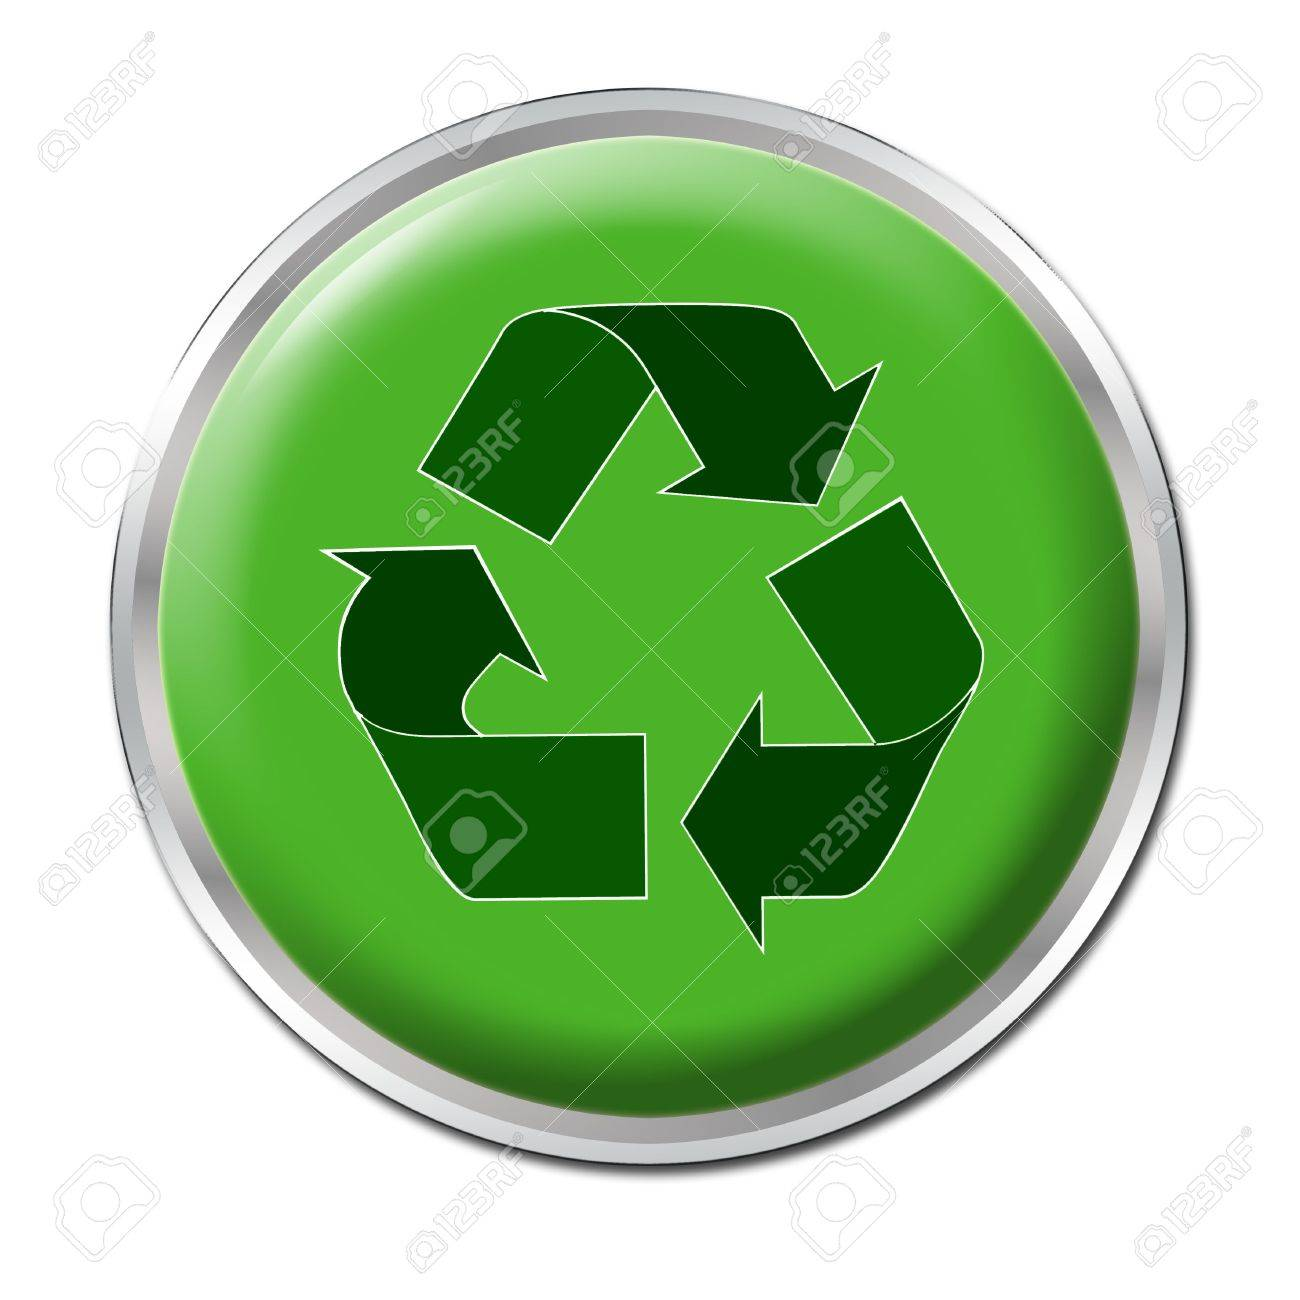 Green button with the symbol for recycling Stock Photo - 3239422